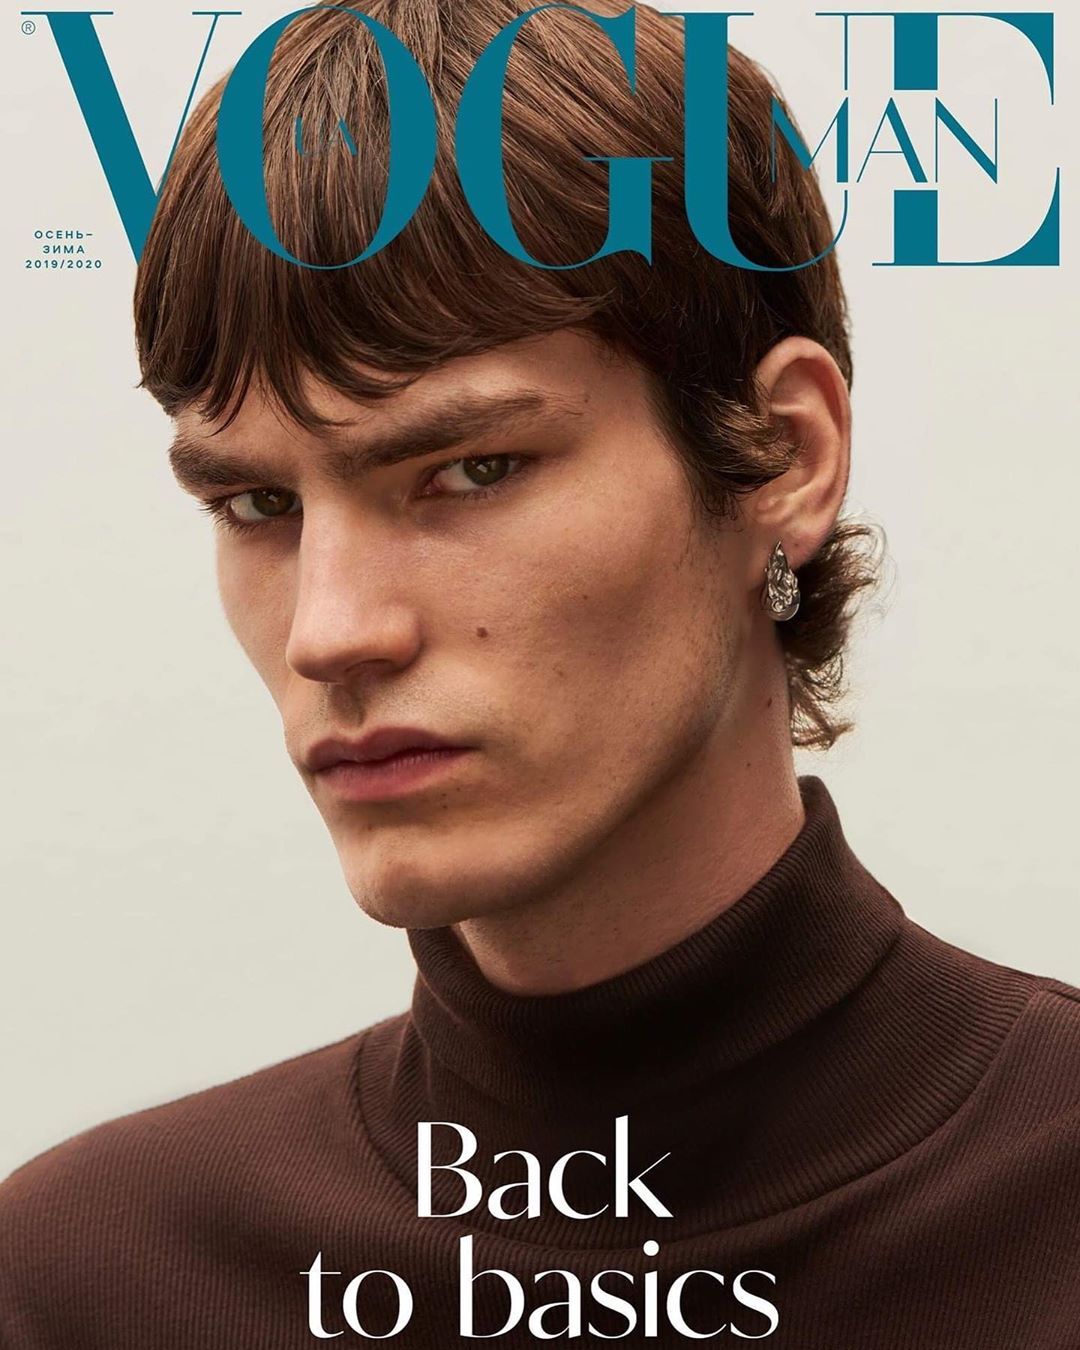 Elias de Poot para Vogue Man Ucrania por Laurent Humbert